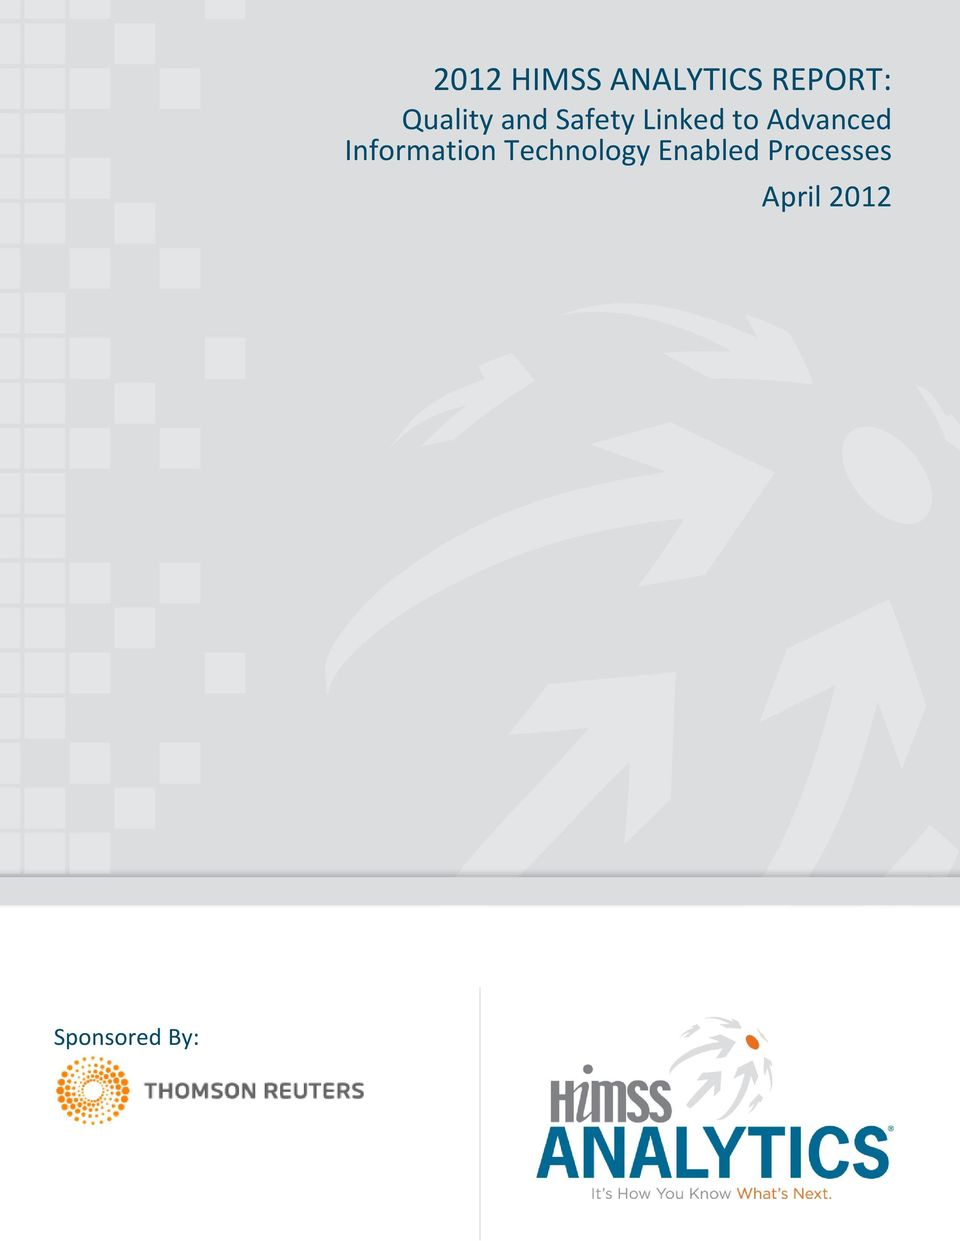 Advanced Information Technology